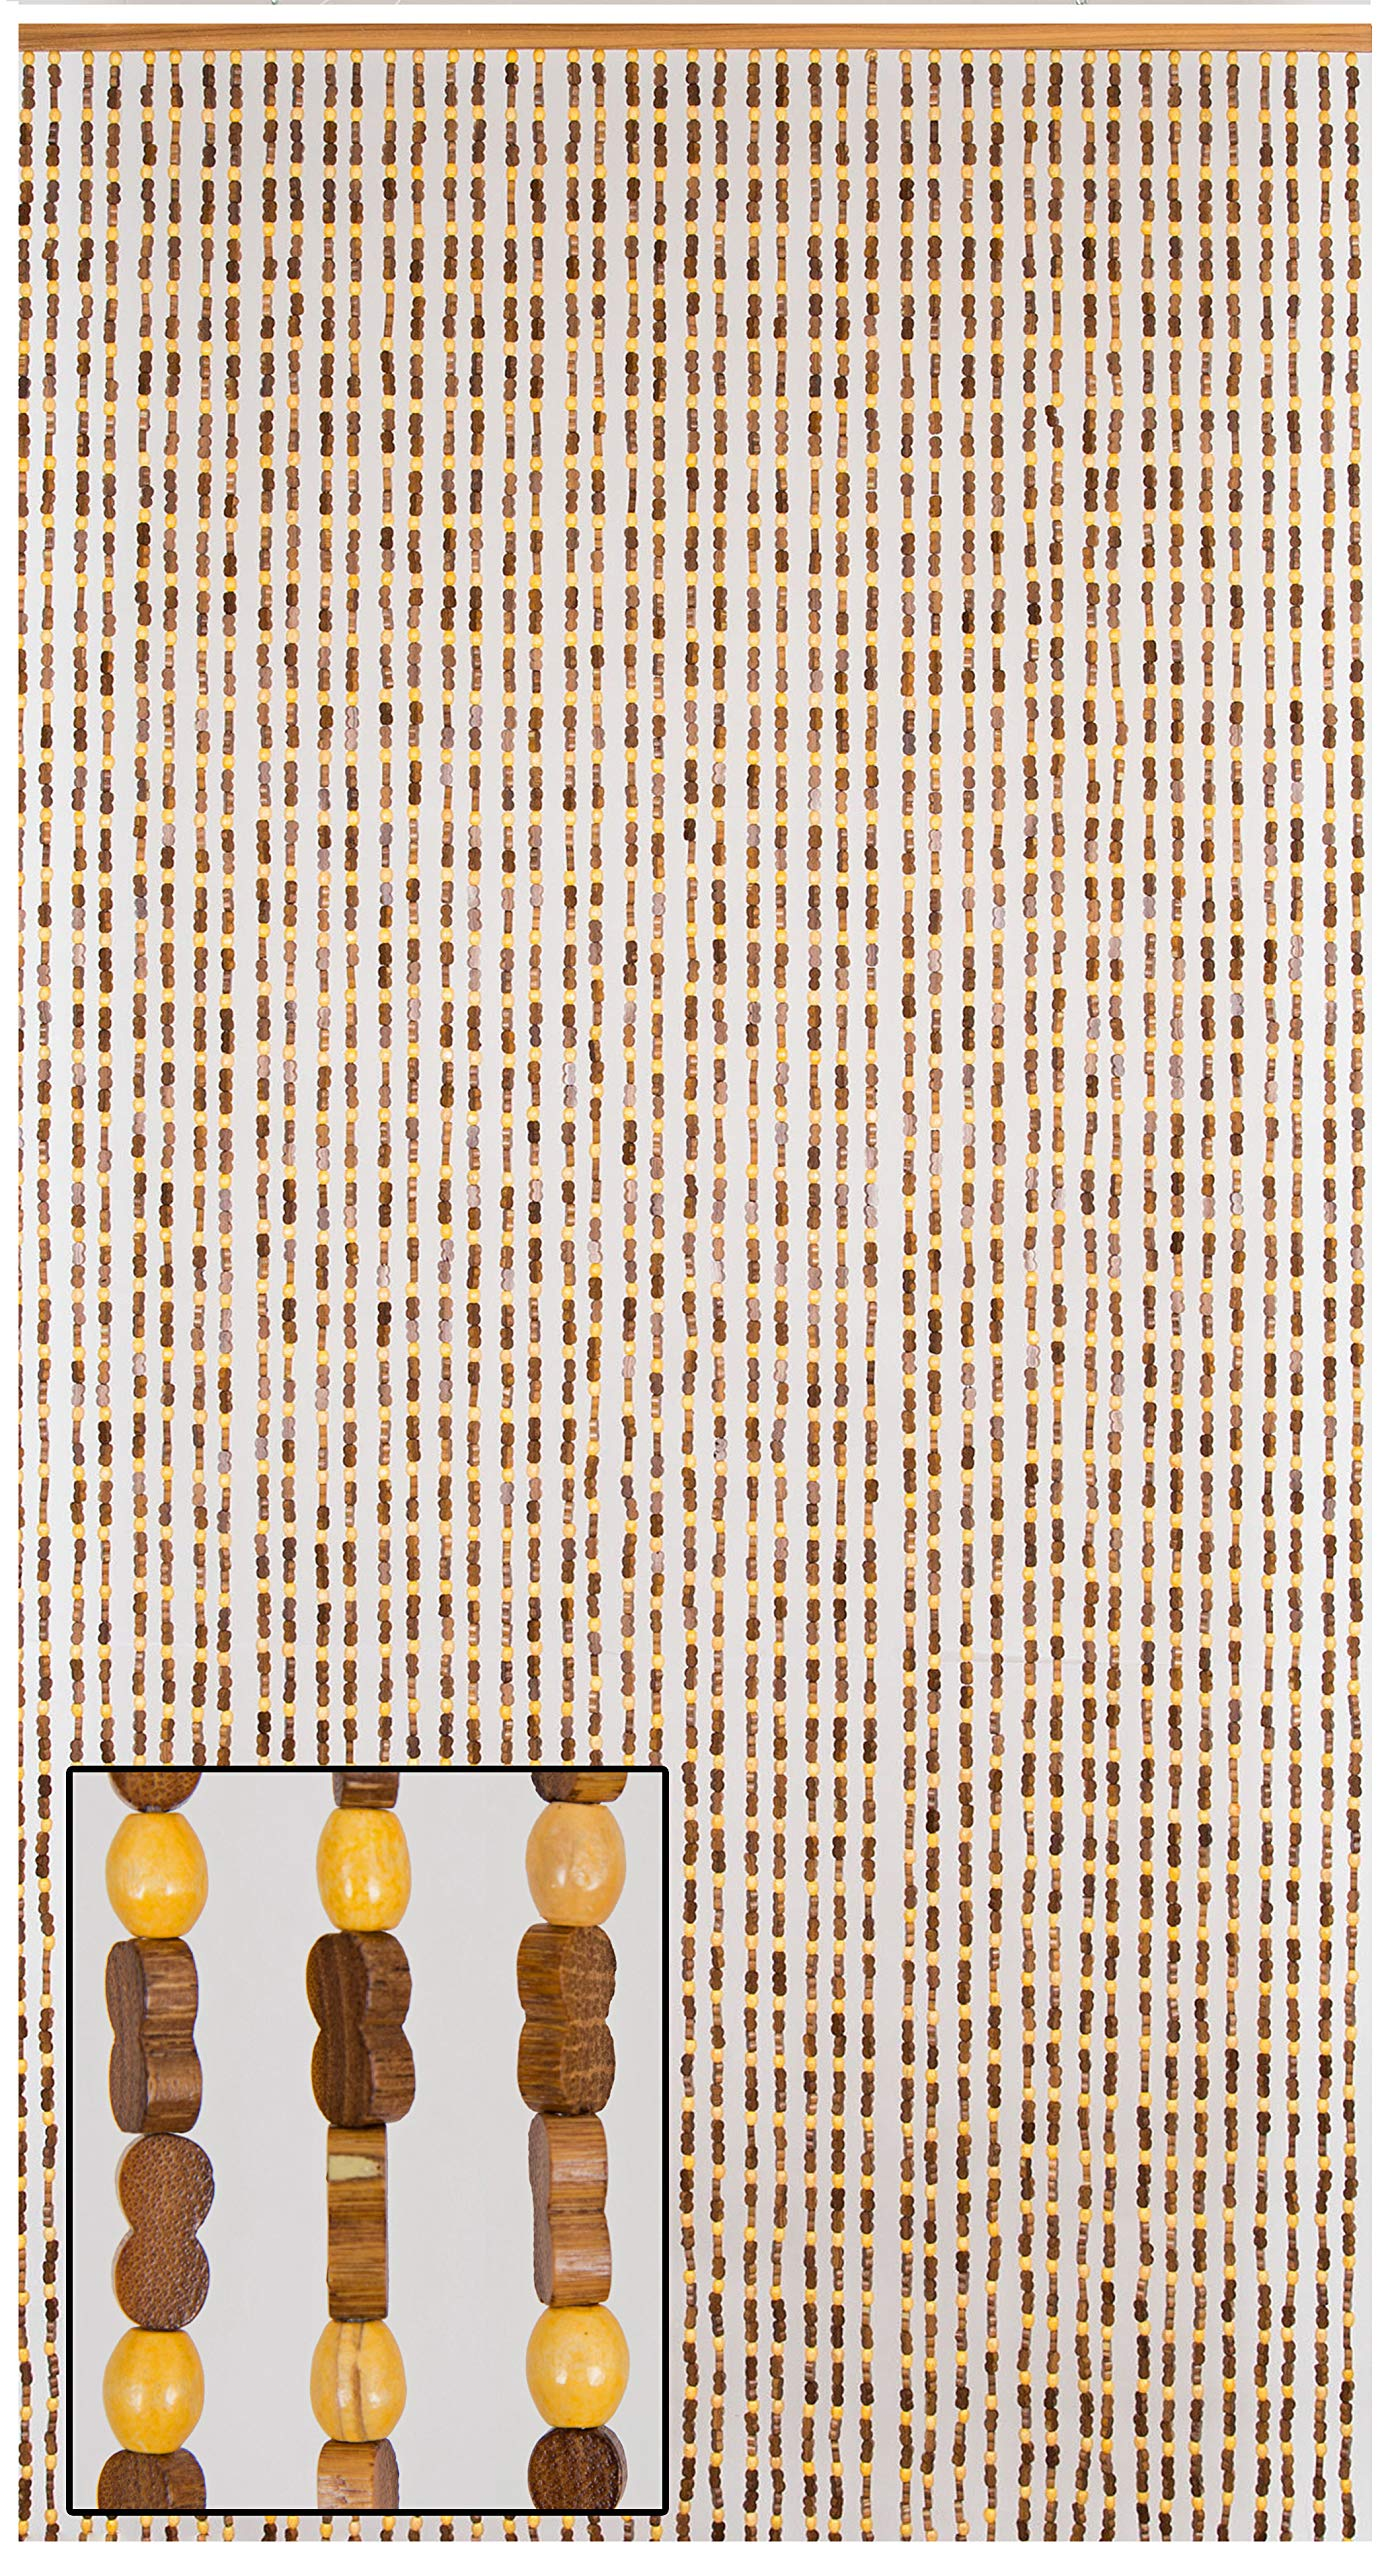 BeadedString Natural Wood and Bamboo Beaded Curtain-45 Strands-77 High-Plain Design-Bamboo and Wooden Doorway Beads-Boho Bohemian Curtain-35.5'' W x 77'' H-SunshineBr by BeadedString (Image #1)